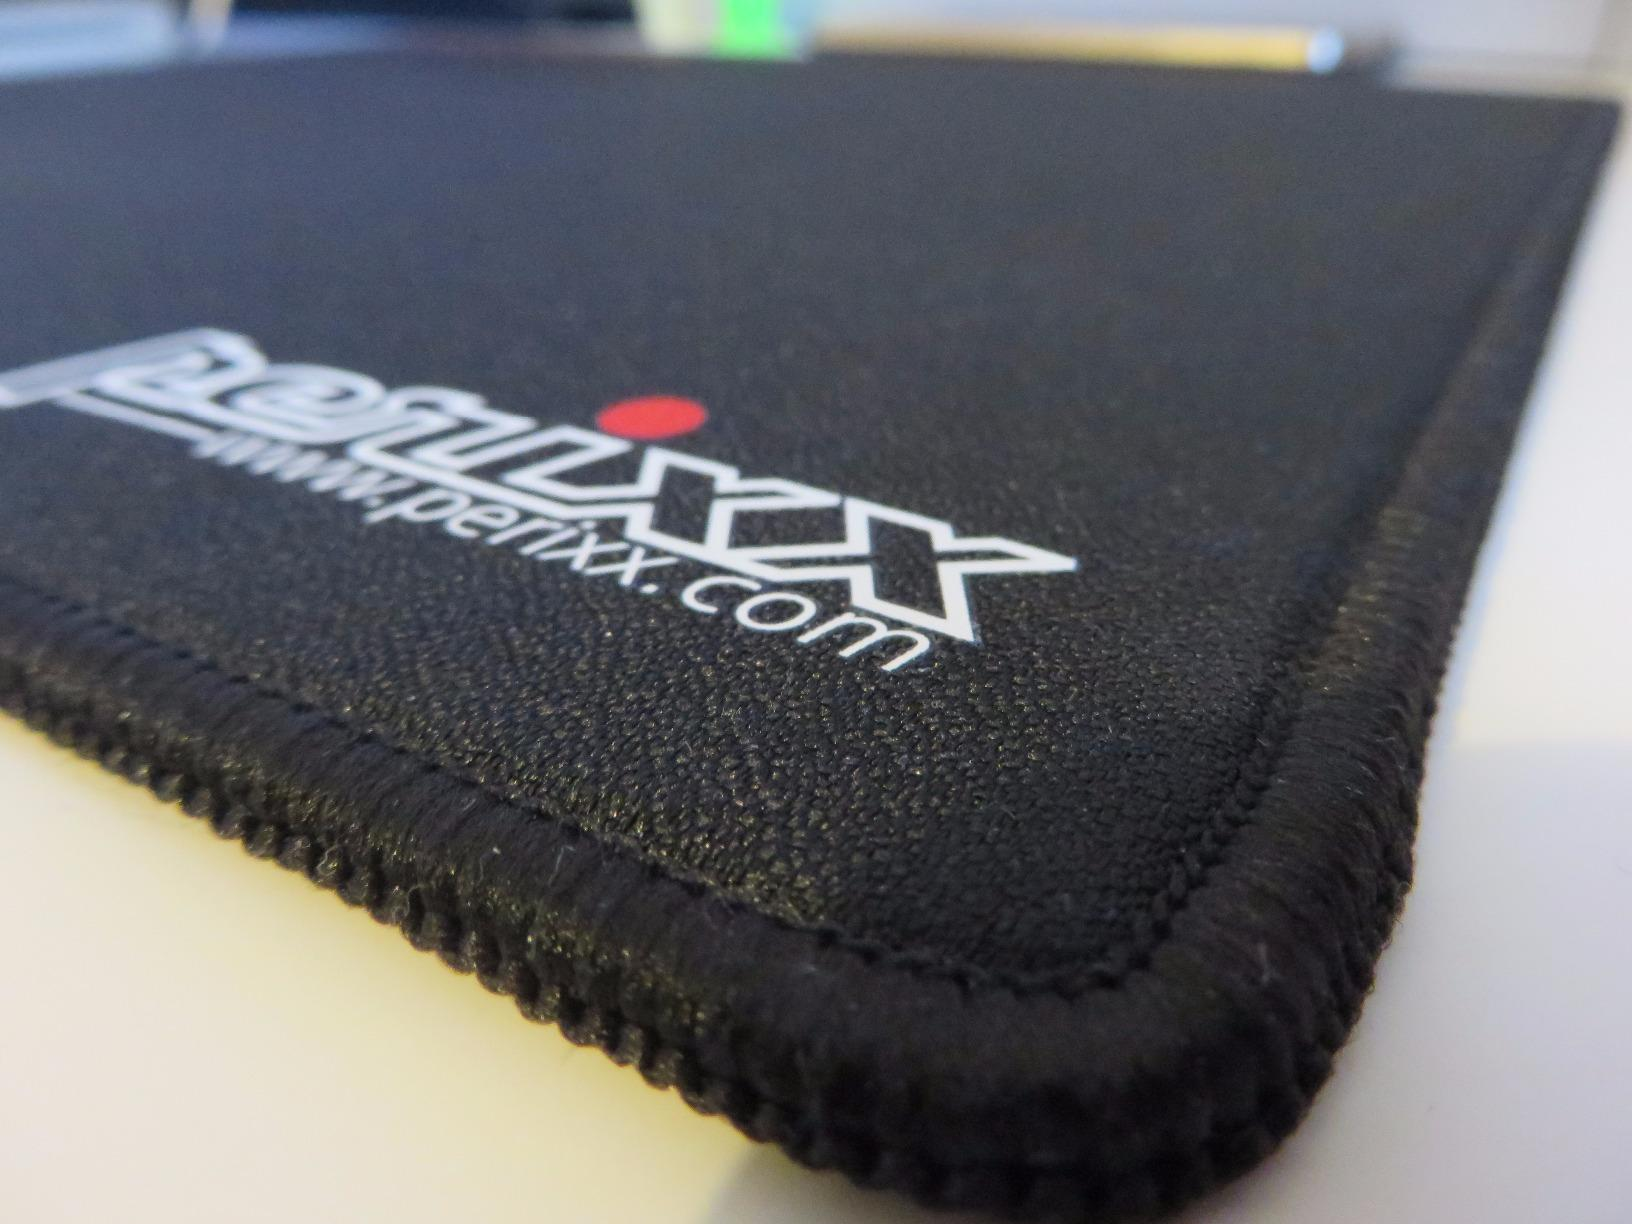 Close up of Perixx DX-2000 mouse pad surface